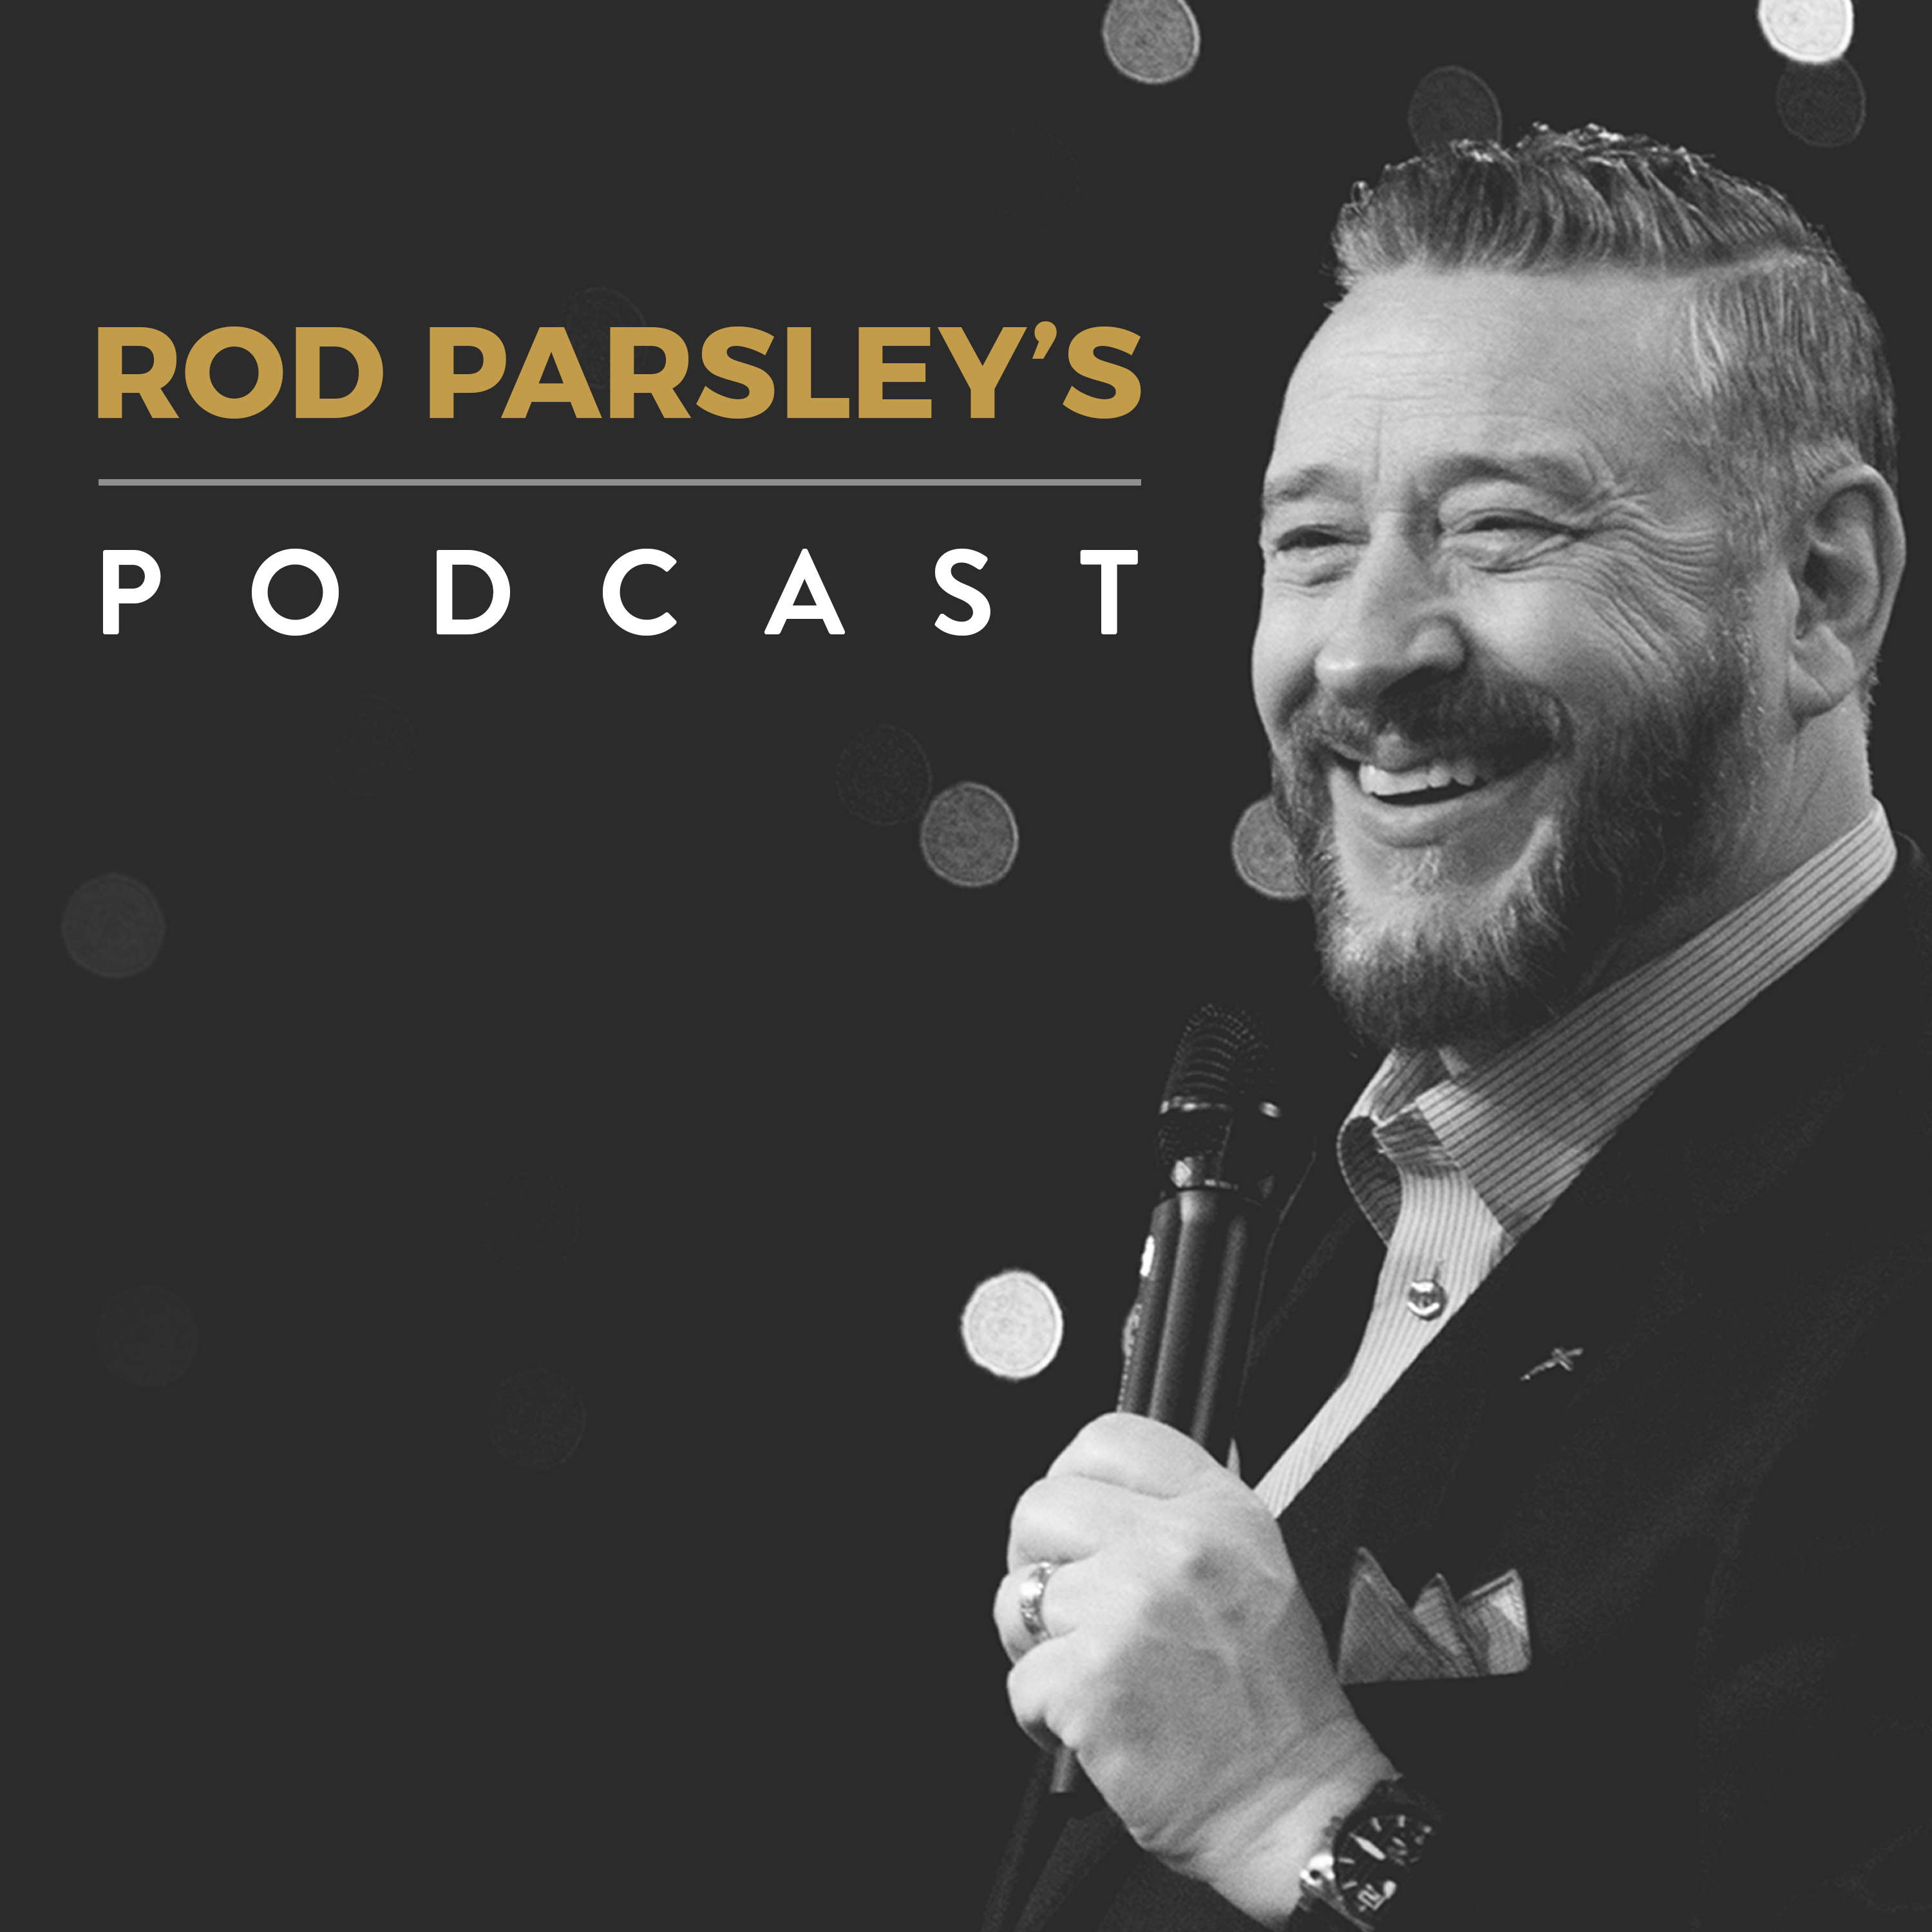 Rod Parsley's Podcast